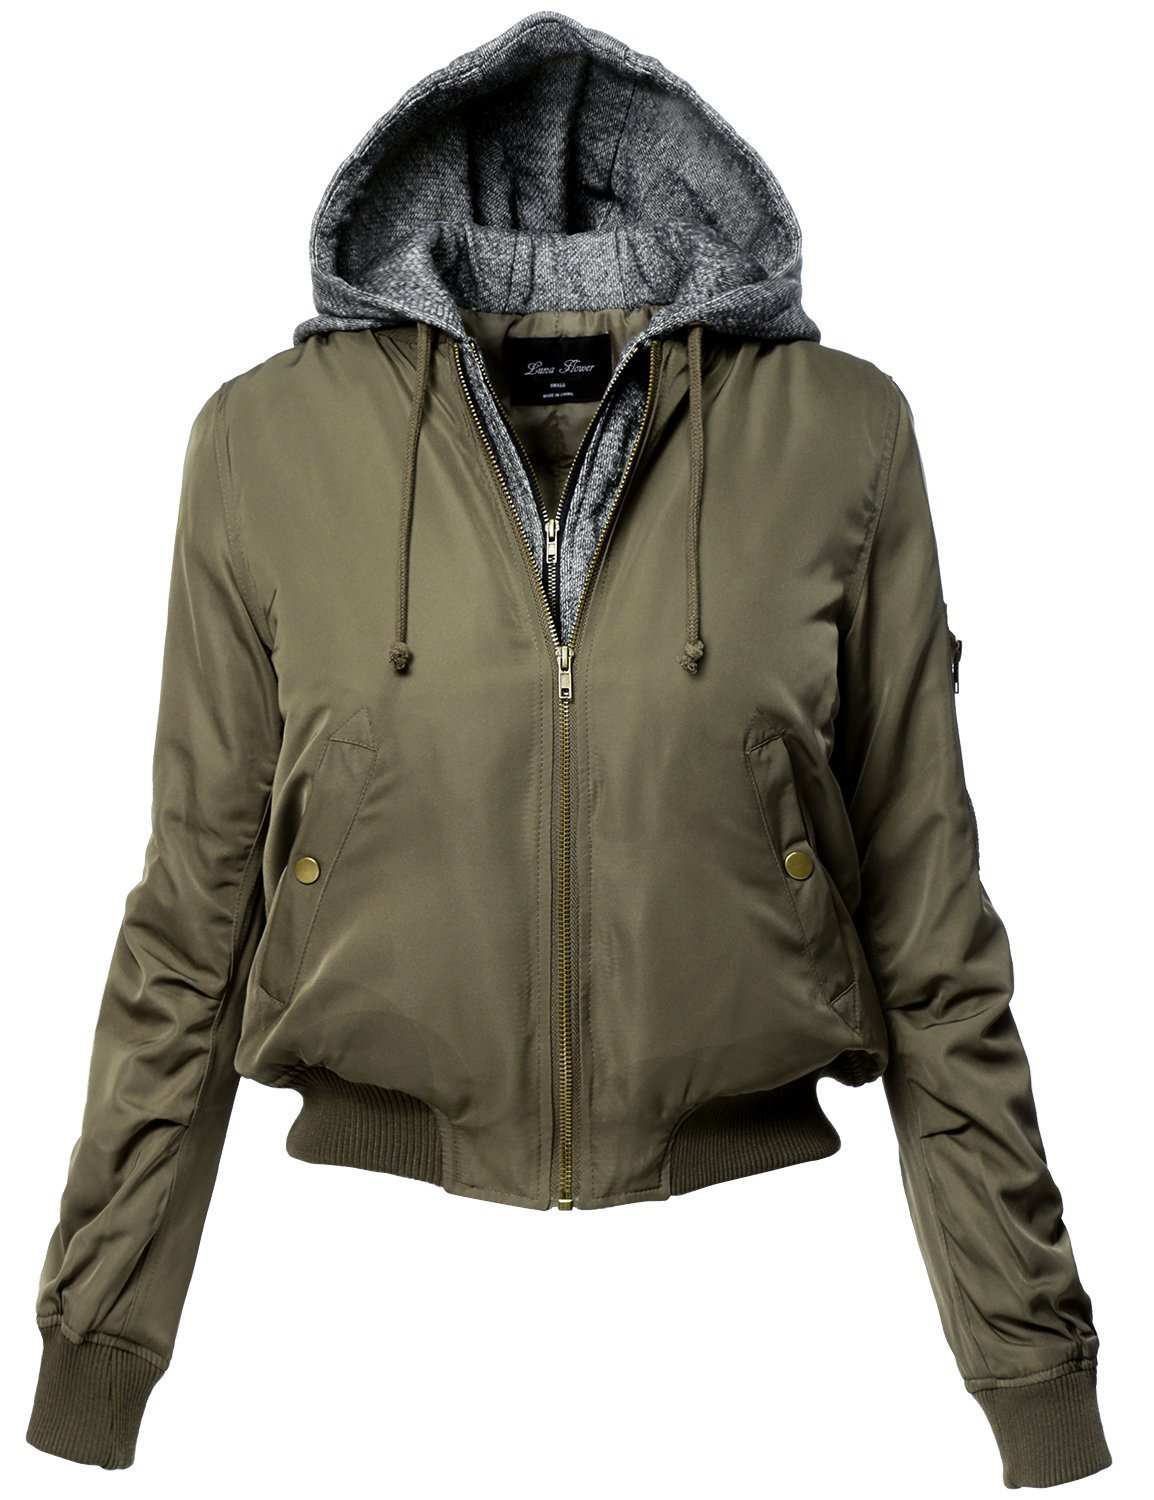 Luna Flower Women's Warm Hoodie Mixed French Terry Bomber Jackets Olive Large (LFWJA0013)